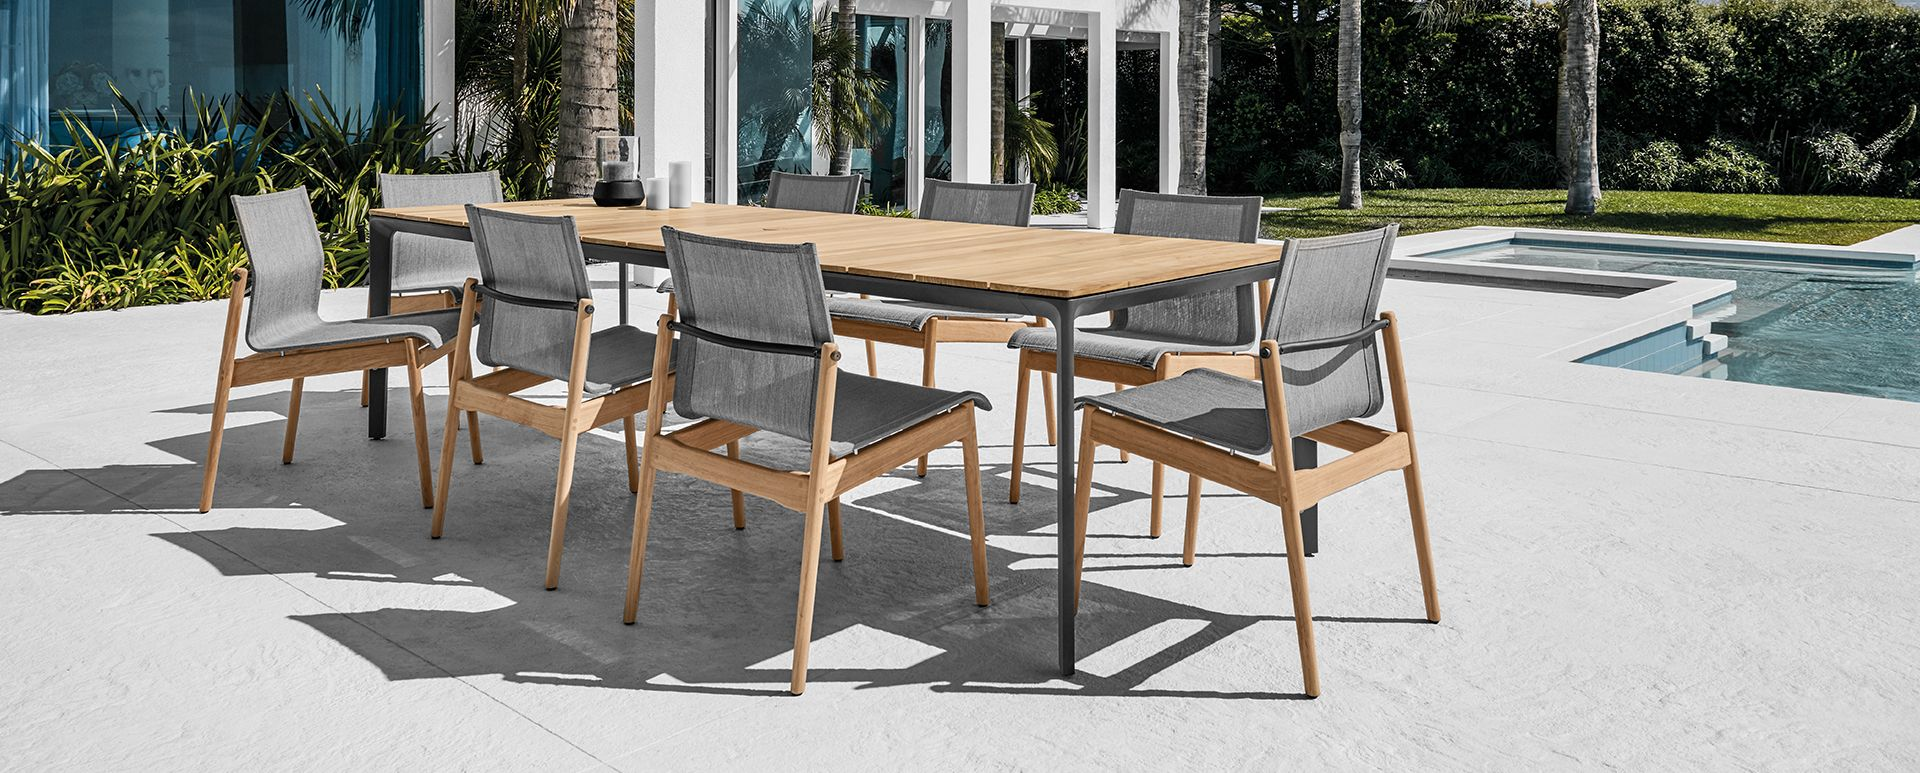 123 Best GLOSTER Innovations [Patio Furniture] Images On Pinterest |  Innovation, Patios And Los Angeles